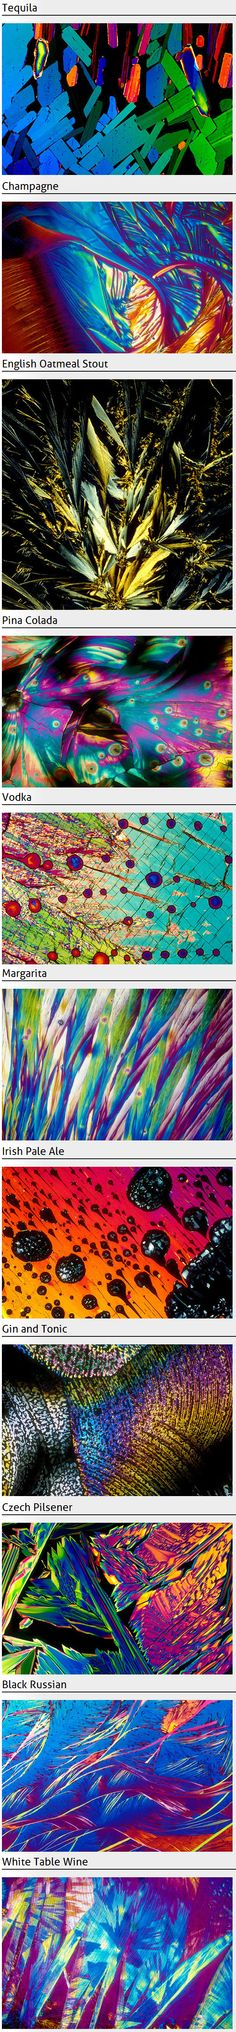 Alcohol under the microscope -  BevShot images are made by first crystallising the drink of choice on a lab slide. Using a standard light microscope with a camera attached, the light source is polarised and passed through the crystal. This creates the magnificent colors. Each colour is a result of the ingredients contained in each beverage.